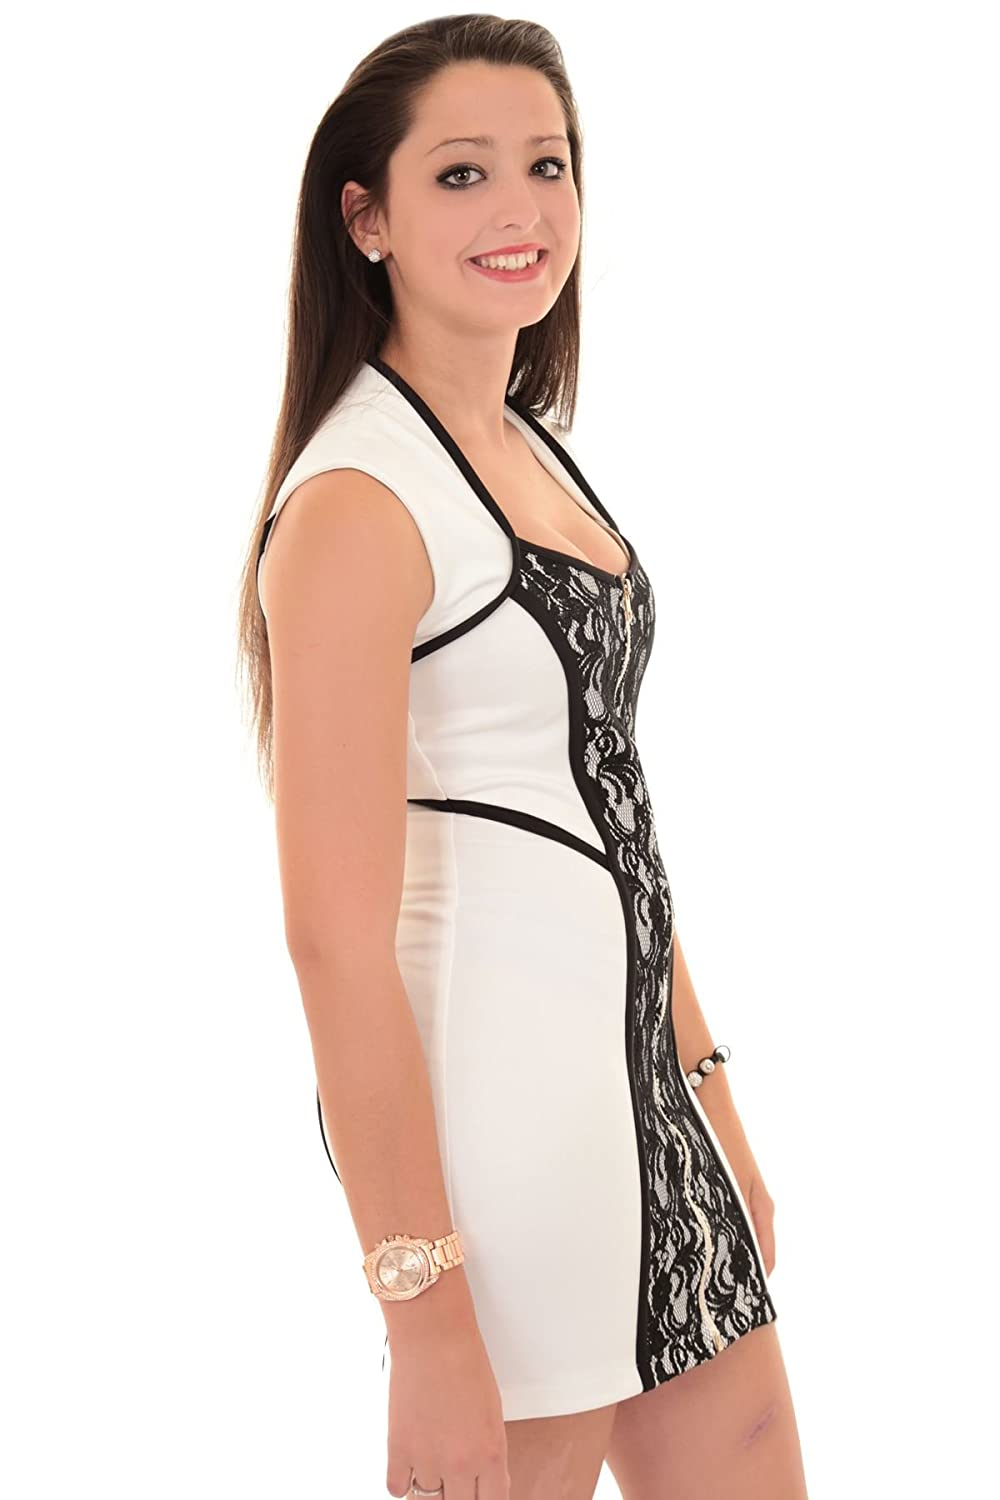 FANTASIA BOUTIQUE ? Ladies Sleeveless Front Zip Floral Lace Panel Contrast Smart Short Bodycon Dress